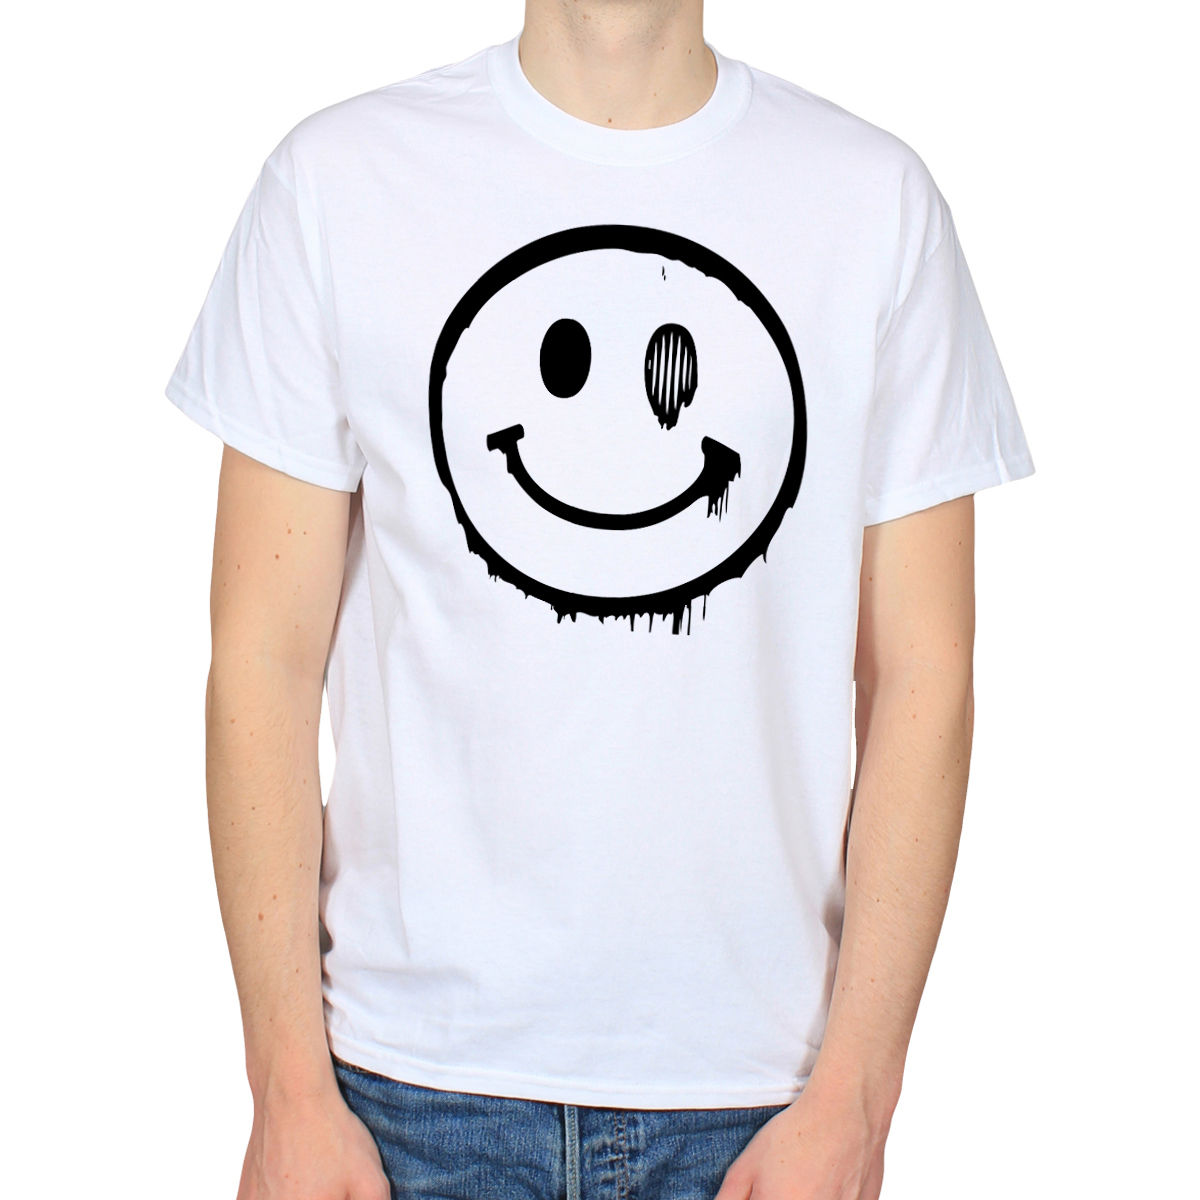 Ital tees bass culture and sound system clothing - Acid Smiley Face Lsd Cyber High Rave House Punk Dub Music Drugs Trip T Shirt